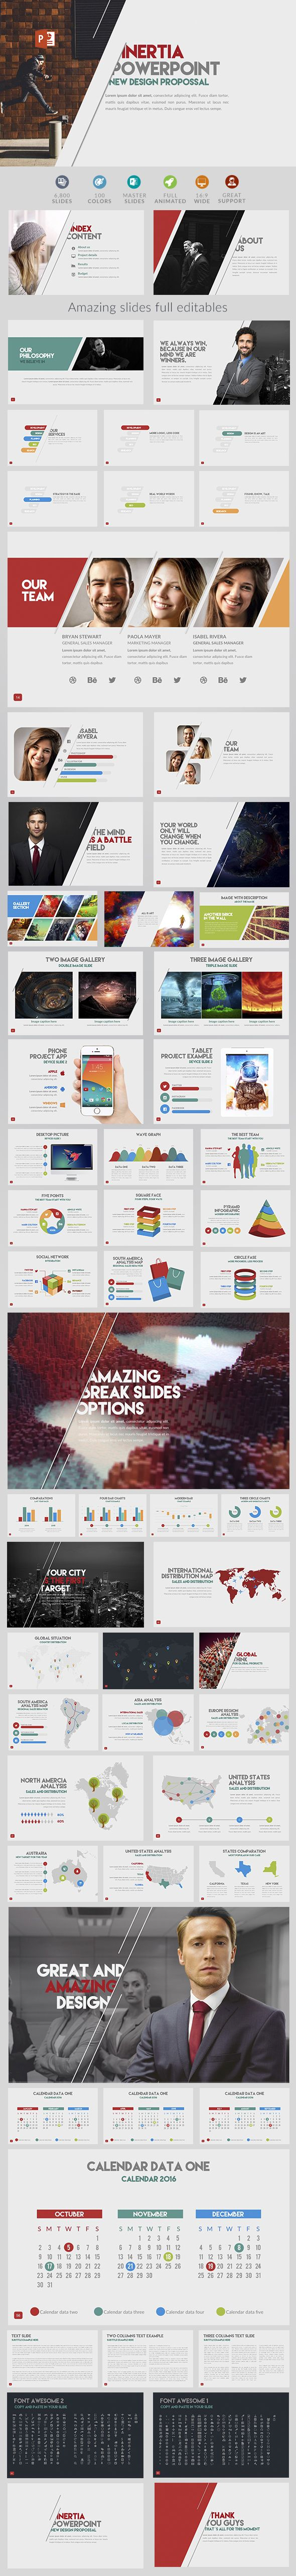 Inertia | Powerpoint Presentation Template #slides Download: http://graphicriver.net/item/inertia-powerpoint-presentation/14545750?ref=ksioks